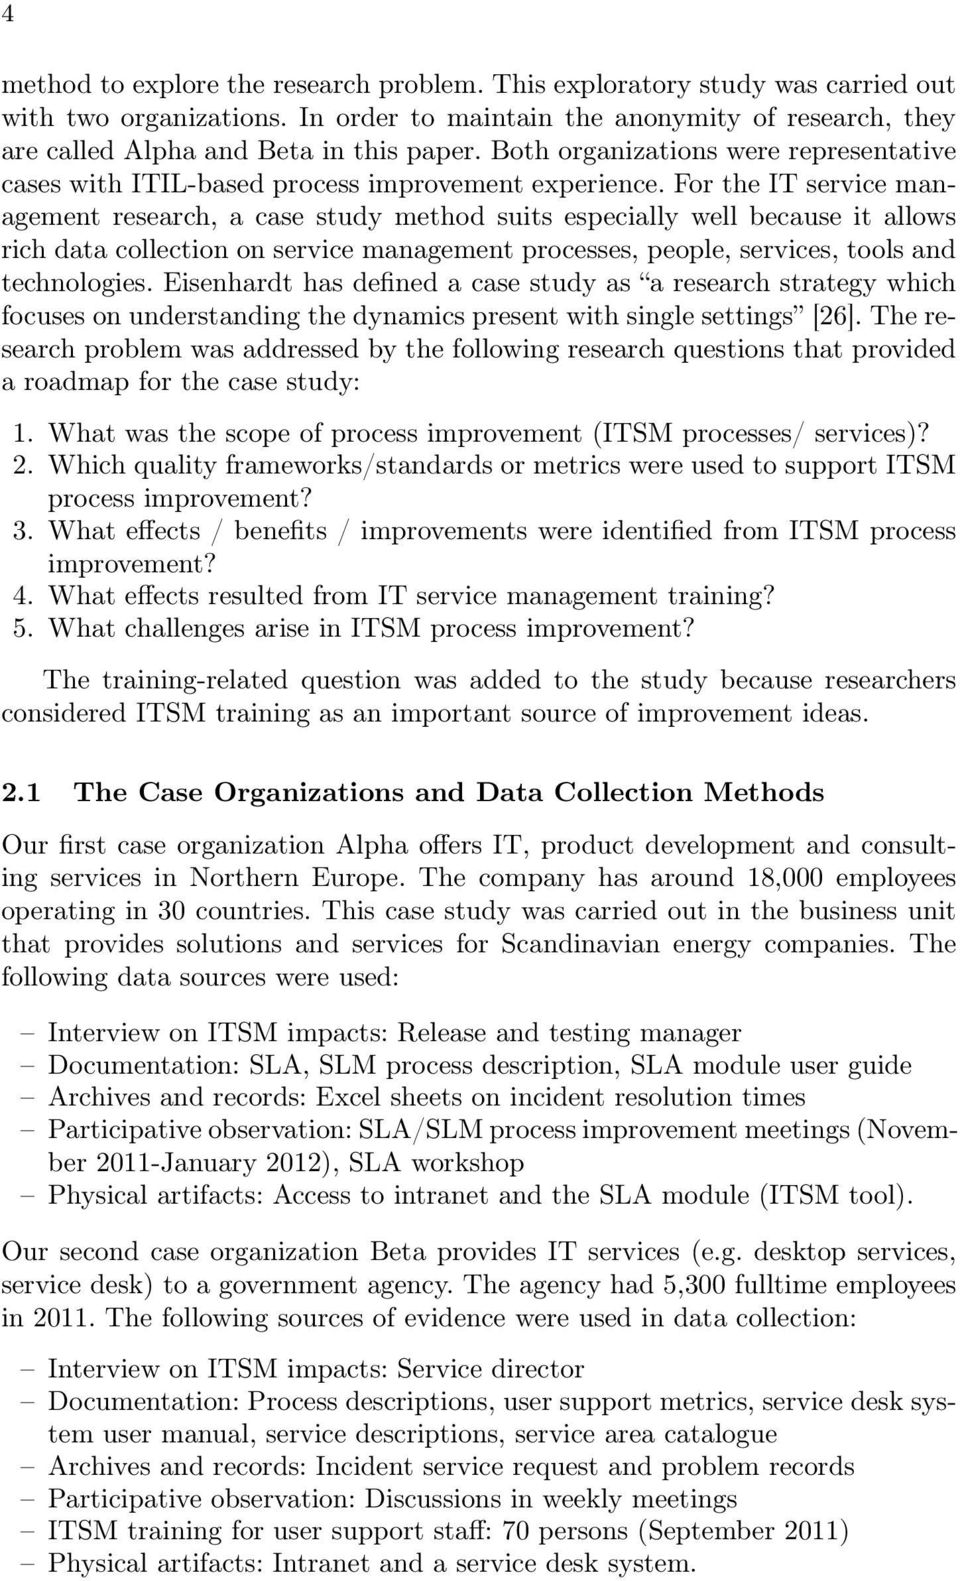 For the IT service management research, a case study method suits especially well because it allows rich data collection on service management processes, people, services, tools and technologies.